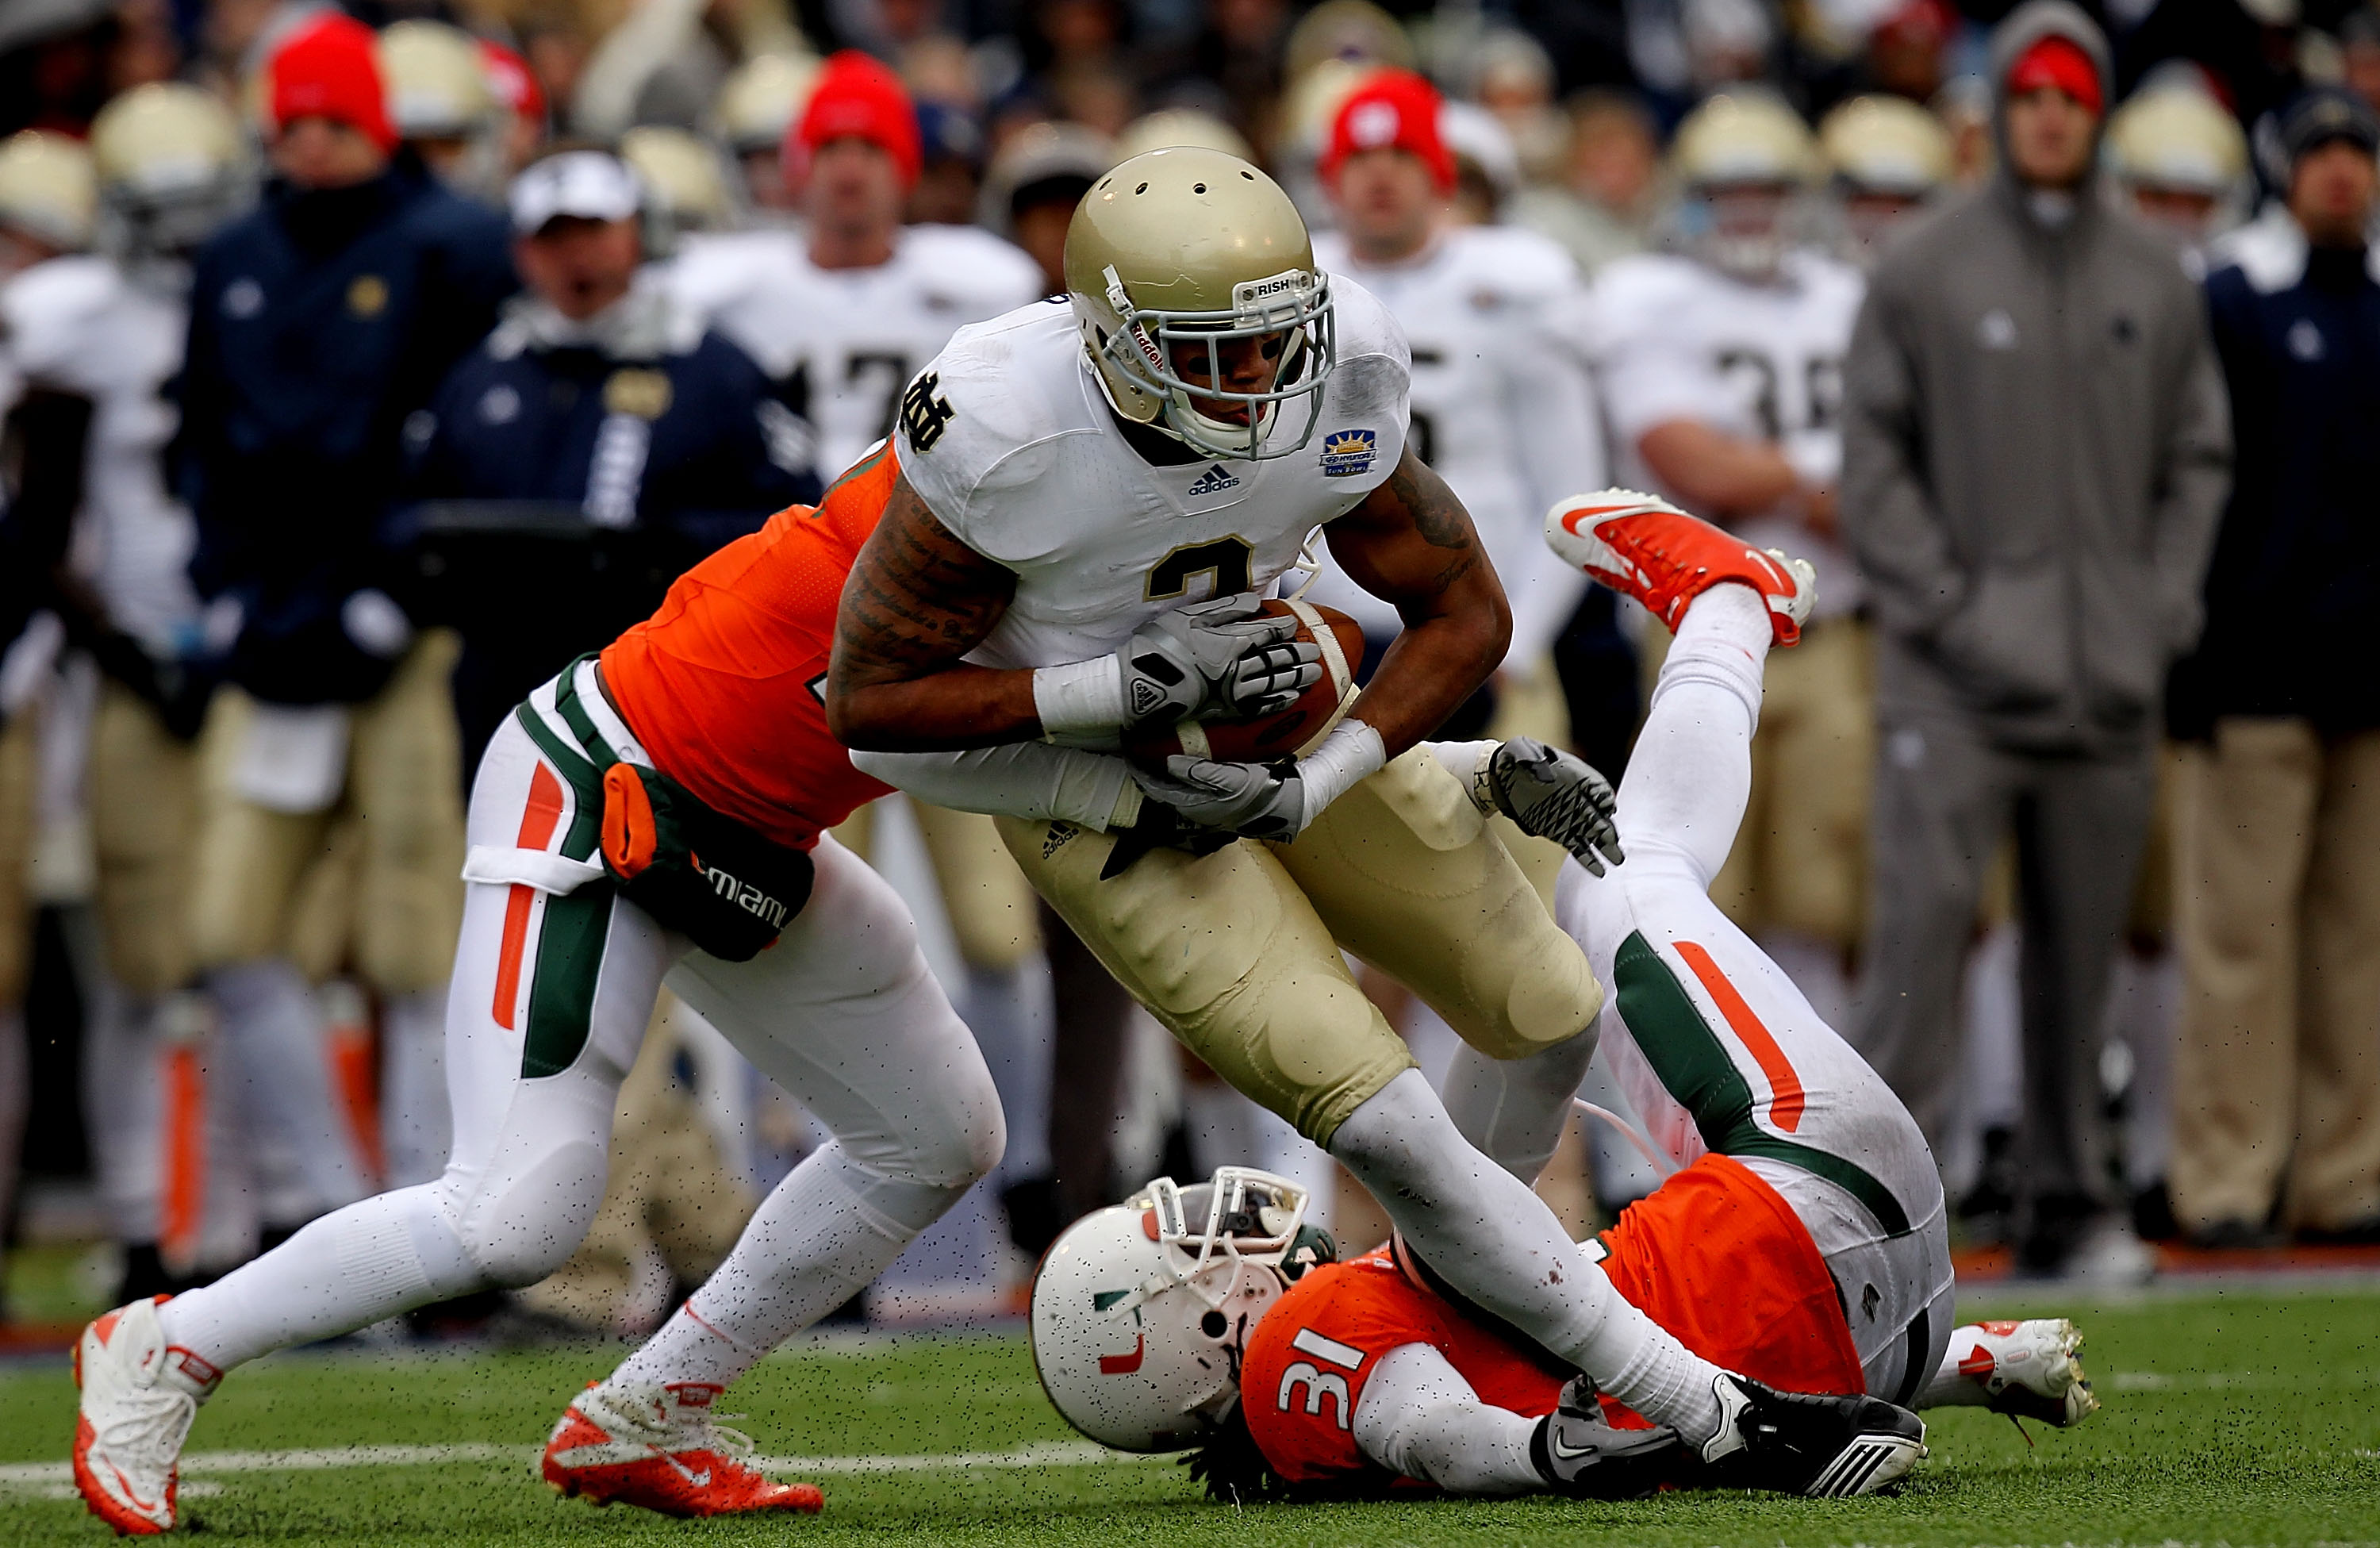 EL PASO, TX - DECEMBER 30:  Wide receiver Michael Floyd #3 of the Notre Dame Fighting Irish runs the ball past Jared Campbell #37 and Sean Spence #31 of the Miami Hurricanes at Sun Bowl on December 30, 2010 in El Paso, Texas.  (Photo by Ronald Martinez/Ge